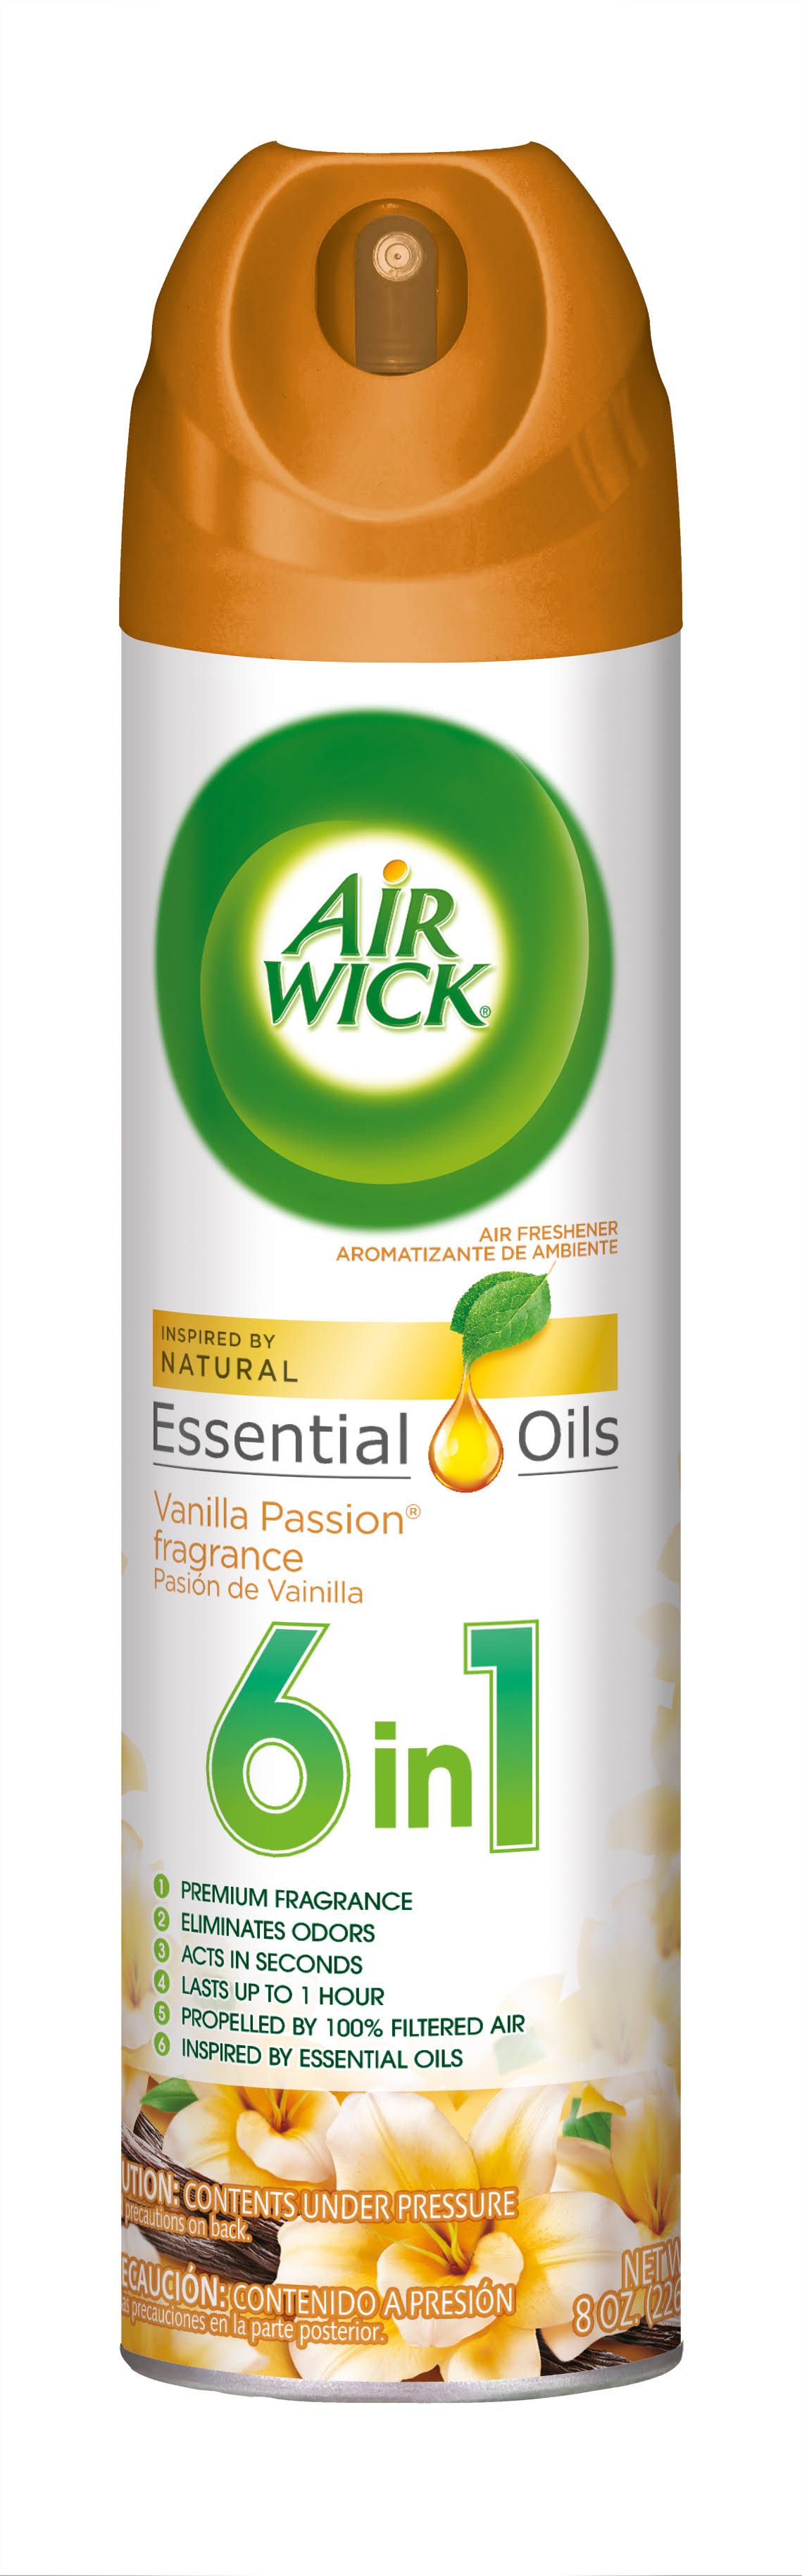 Air Wick 2 in 1 Air Freshener Spray - 8oz, Vanilla Indulgence